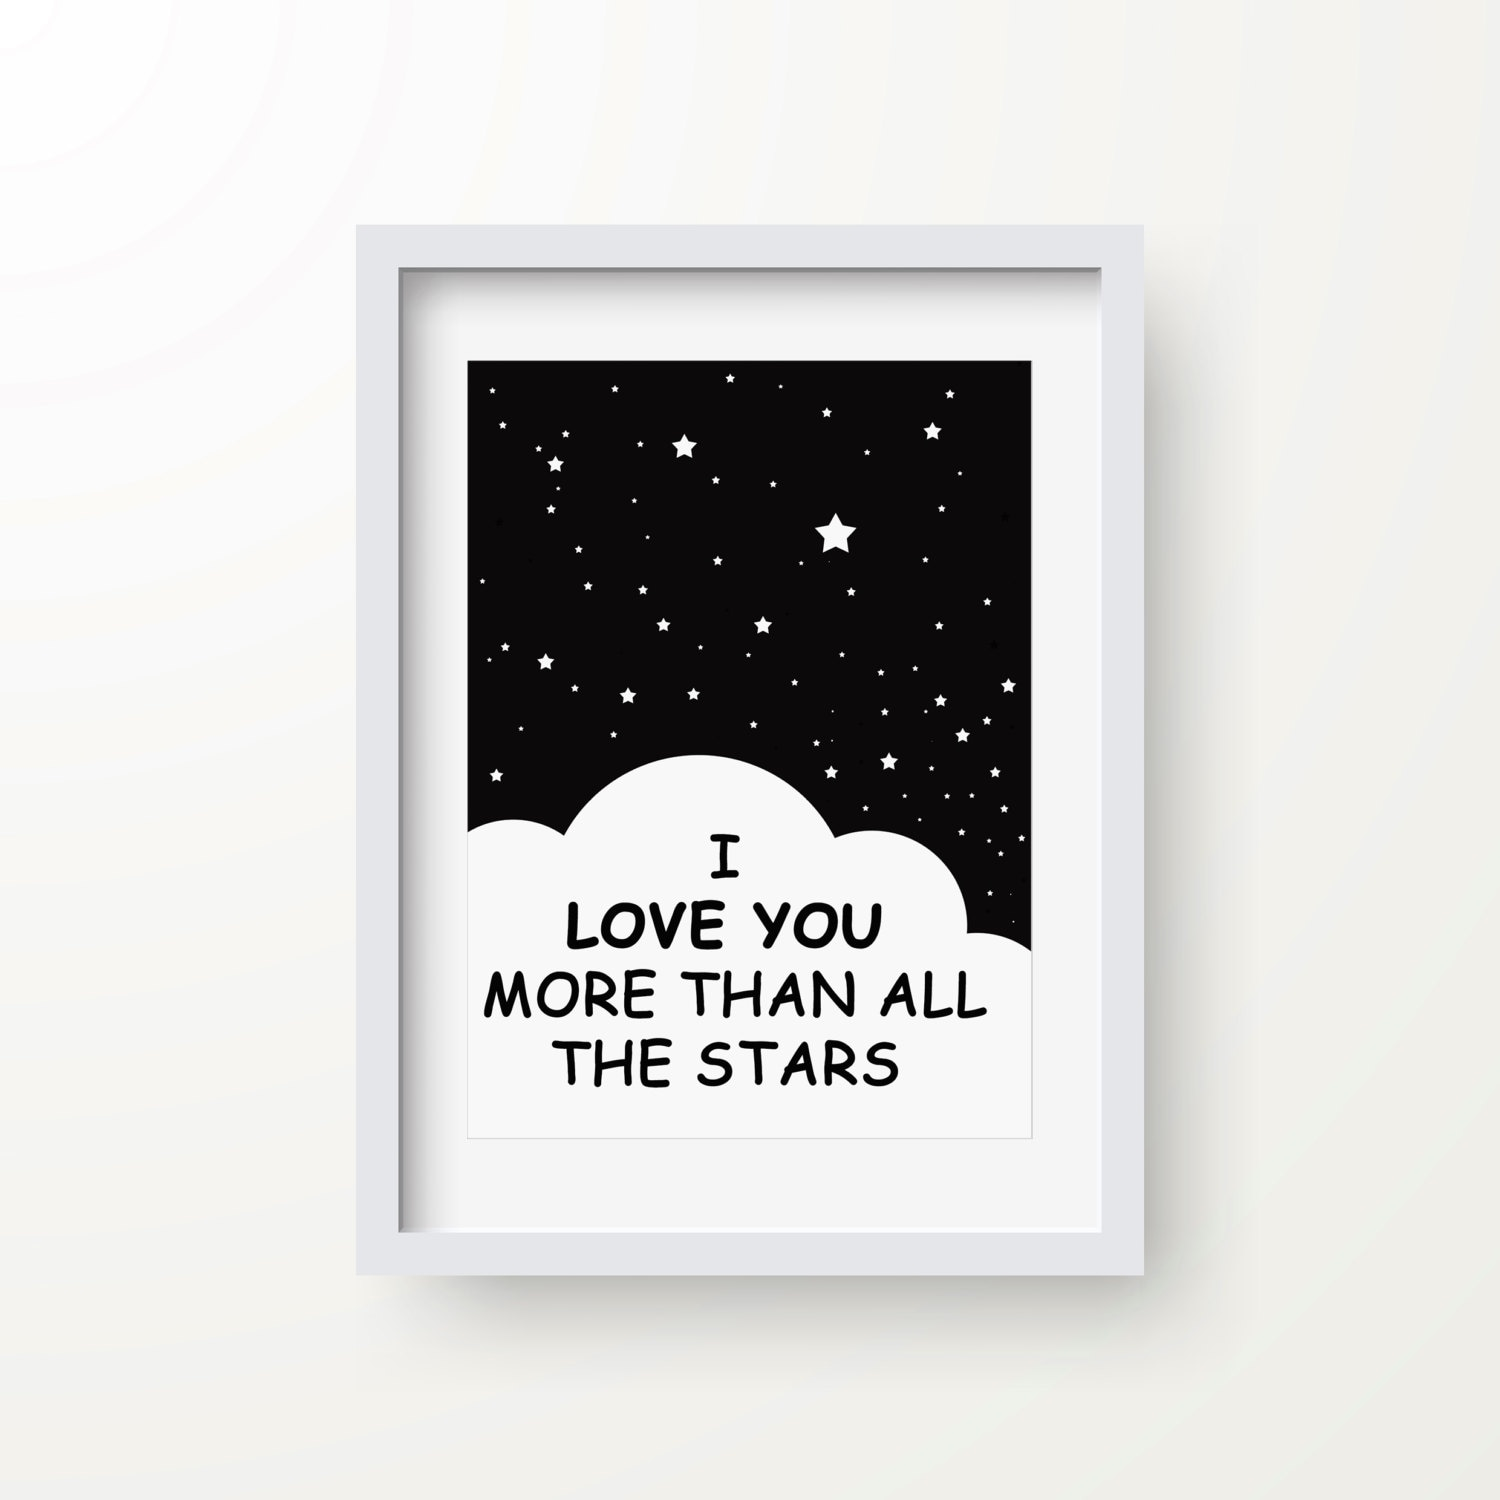 I Love You More Than Quotes: I Love You More Than All The Stars Print Inspirational Quote